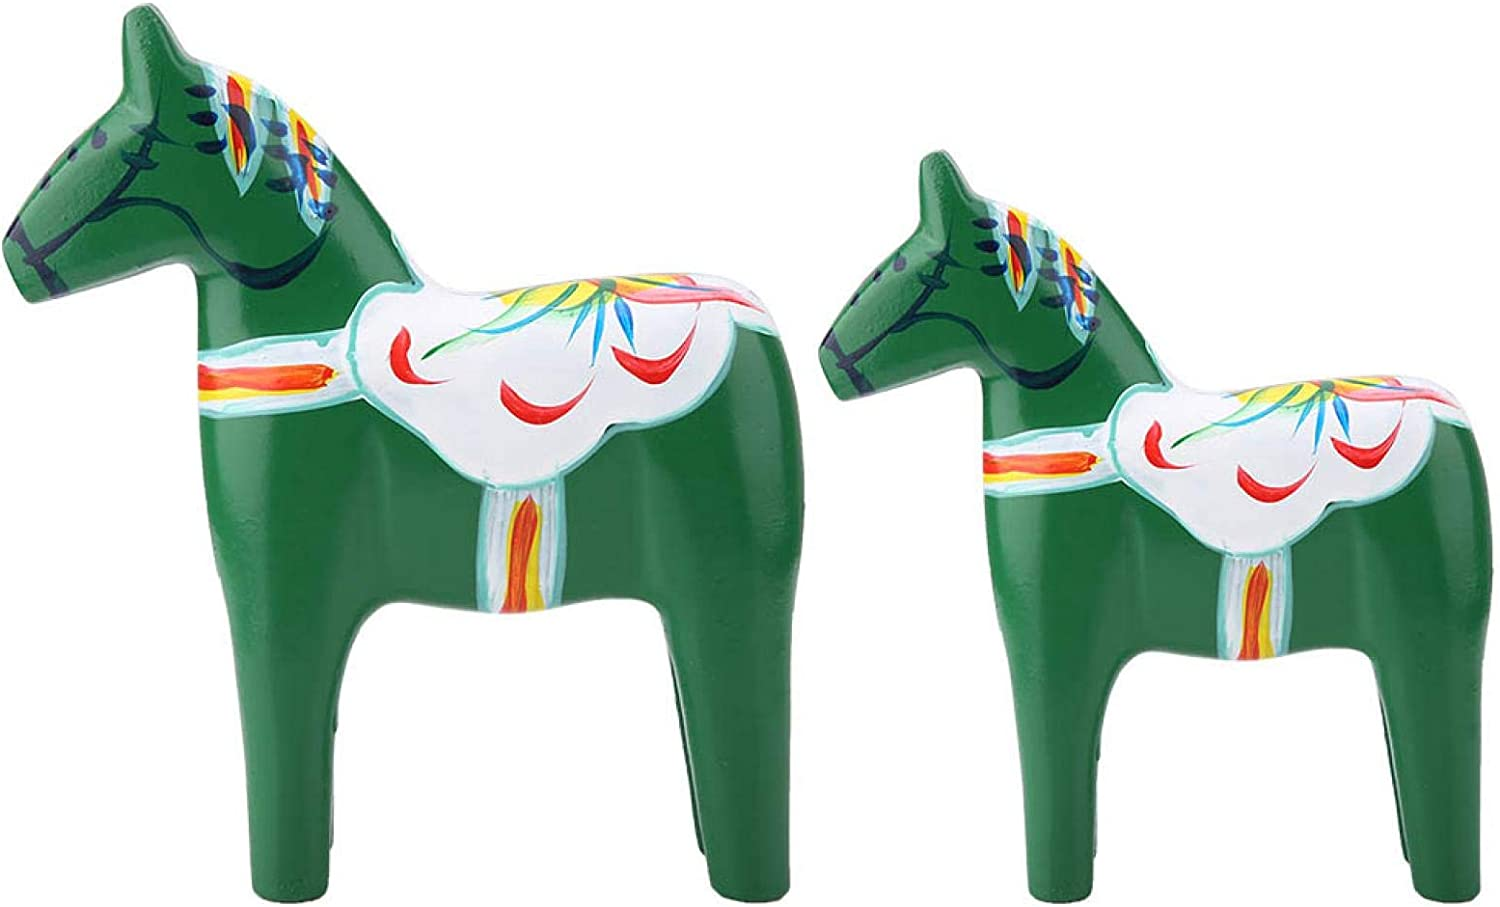 CUIFATI Painted Horse Figurine Eco-Fri New Sales of SALE items from new works item Quality Wooden Material